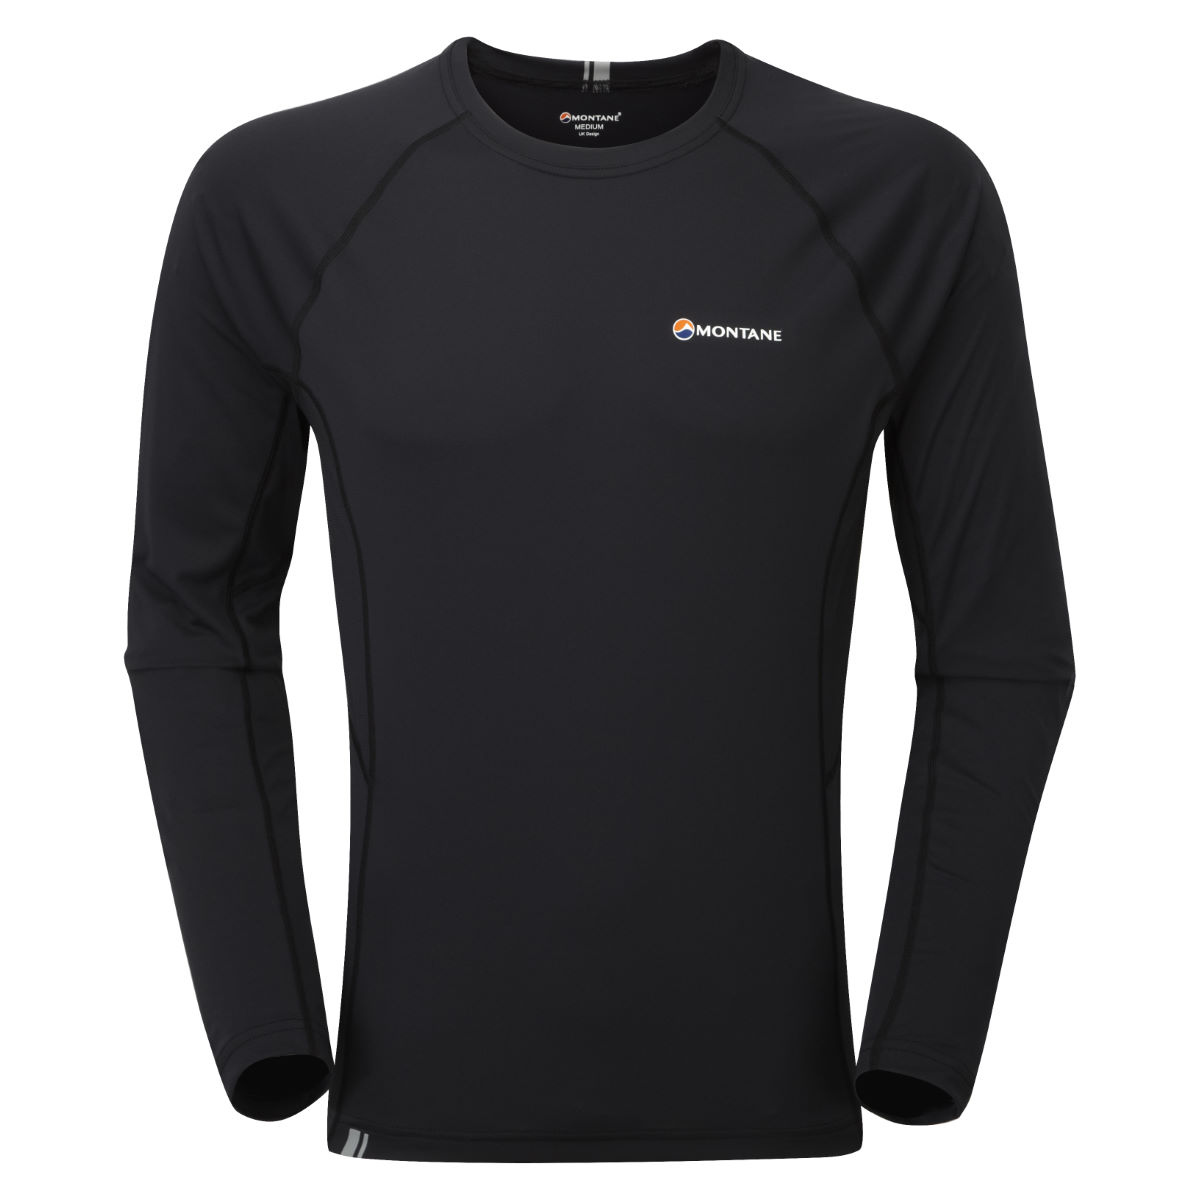 Montane - Sonic Long Sleeve T-Shirt - XL Noir/Noir